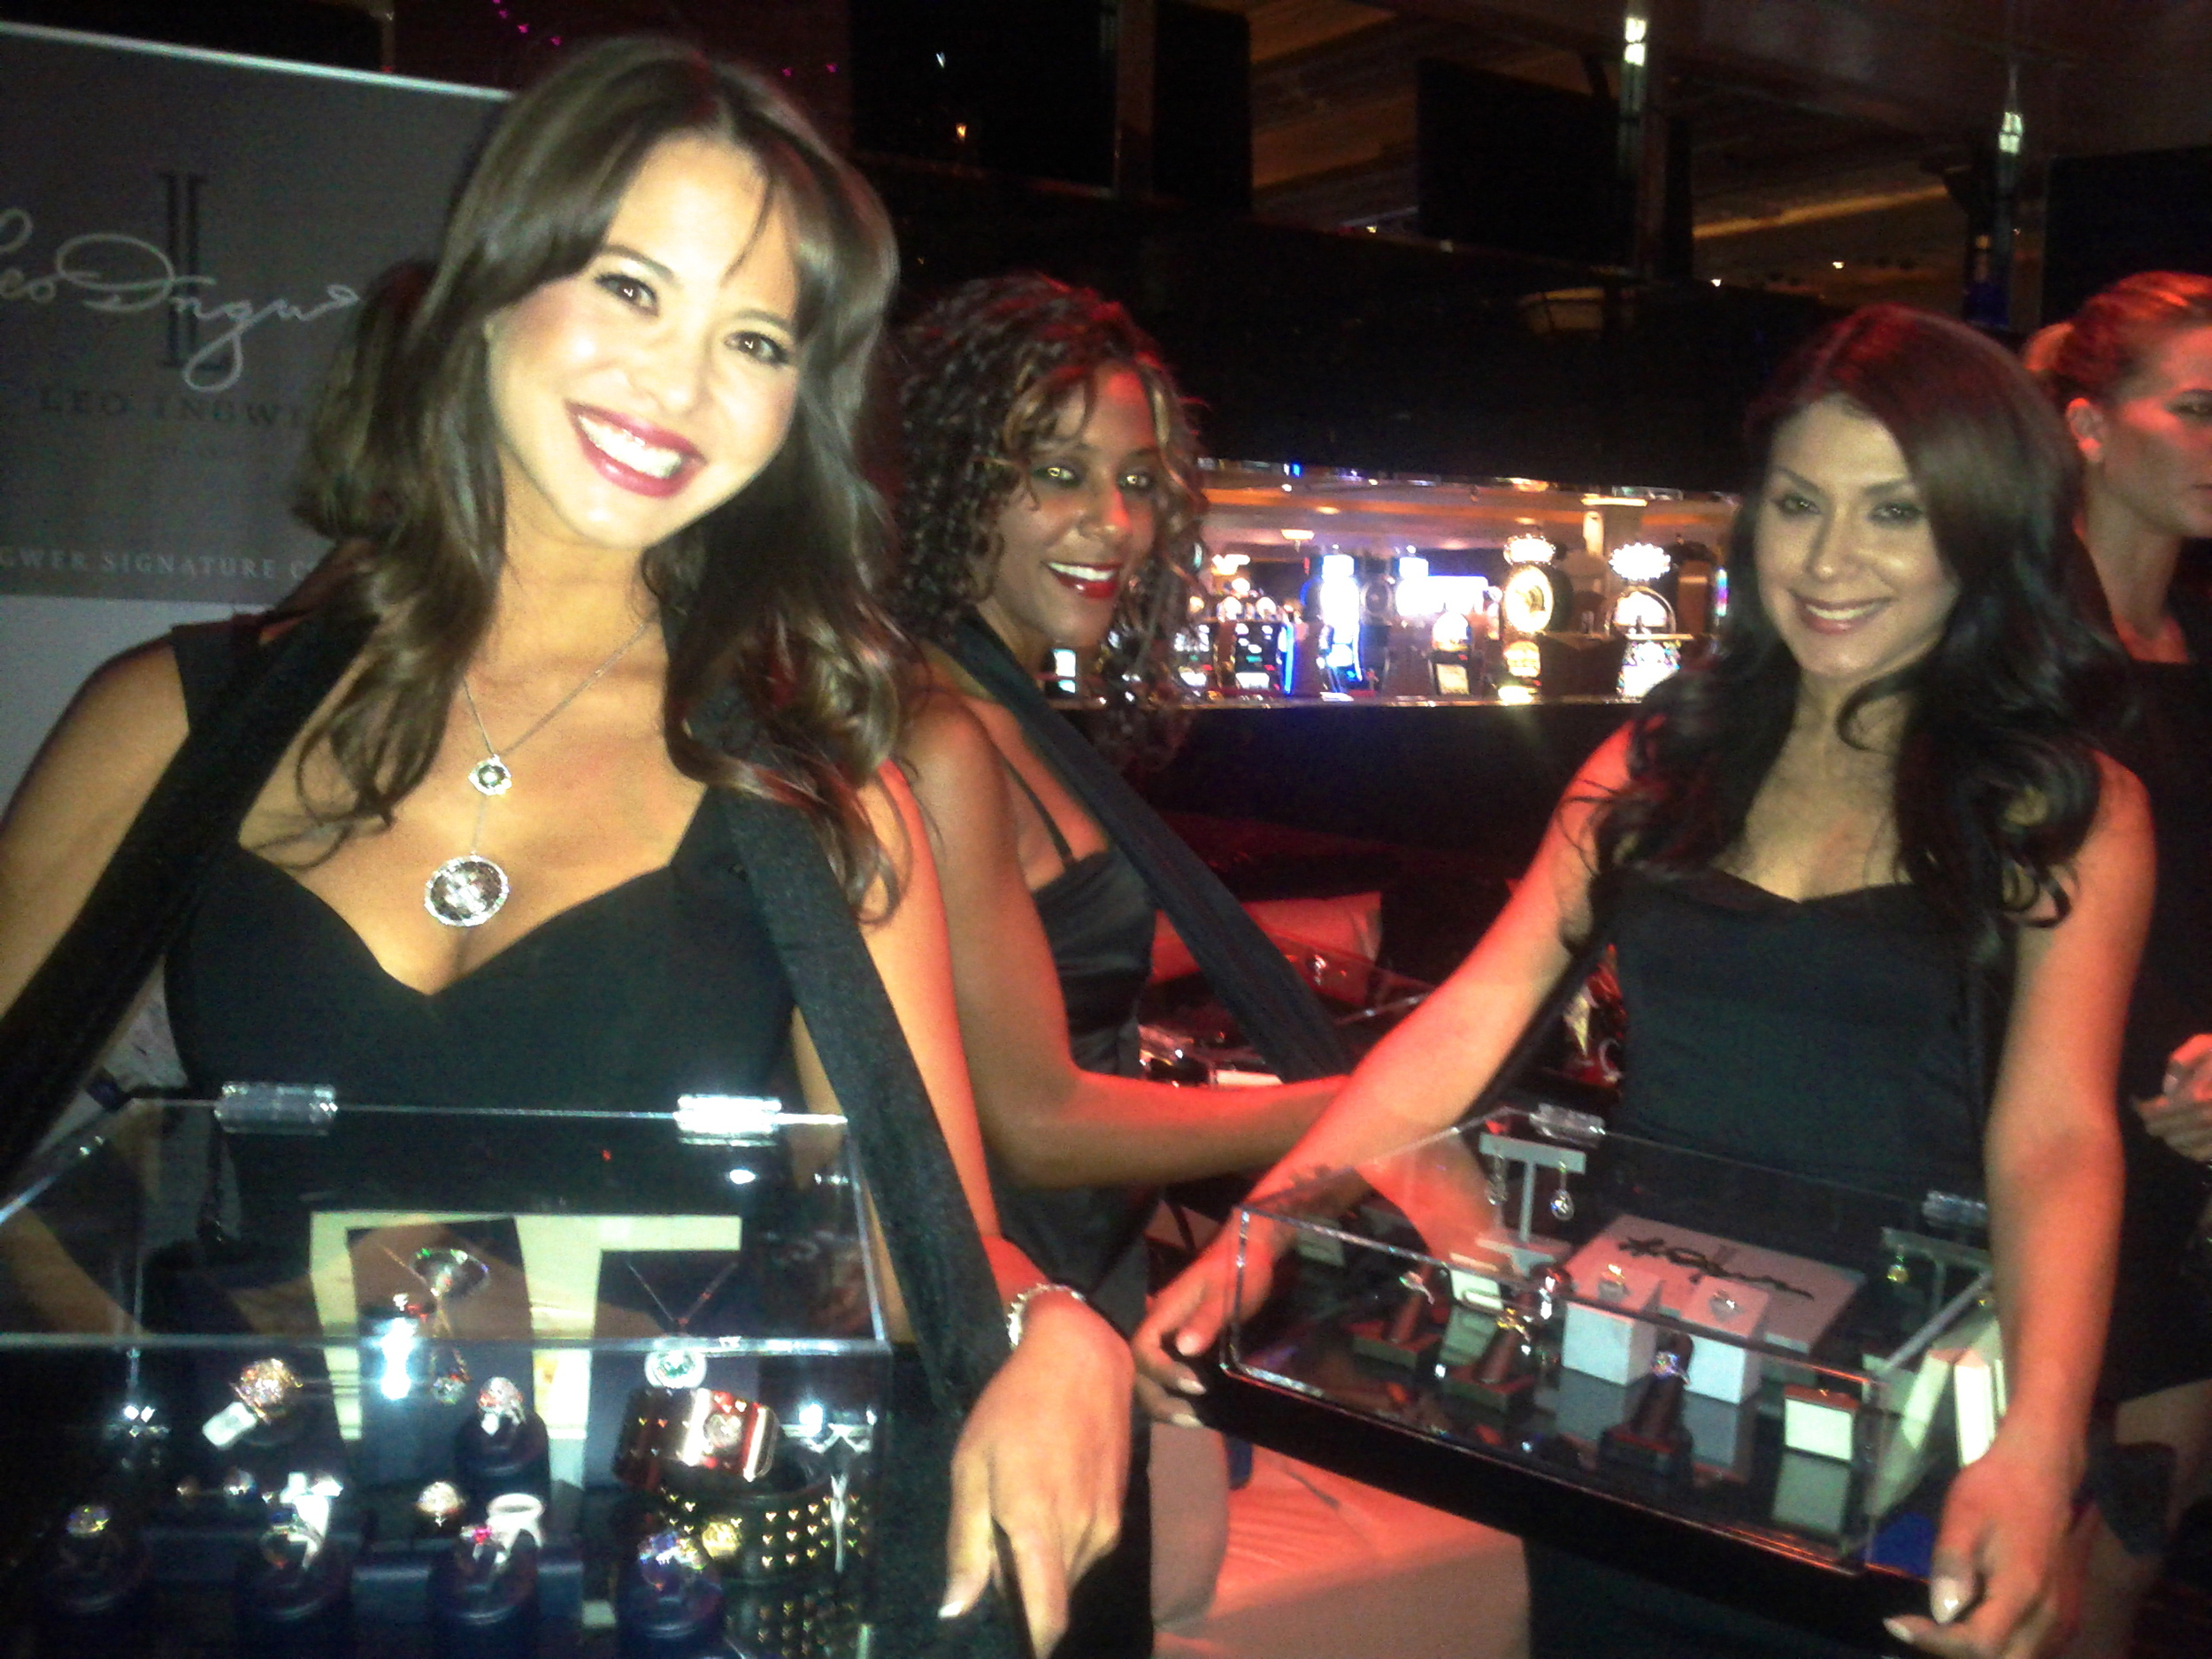 Must be Vegas! Royal Asscher cocktail event, Vegas-style at Eye Candy Lounge at Mandalay Bay in Las Vegas.